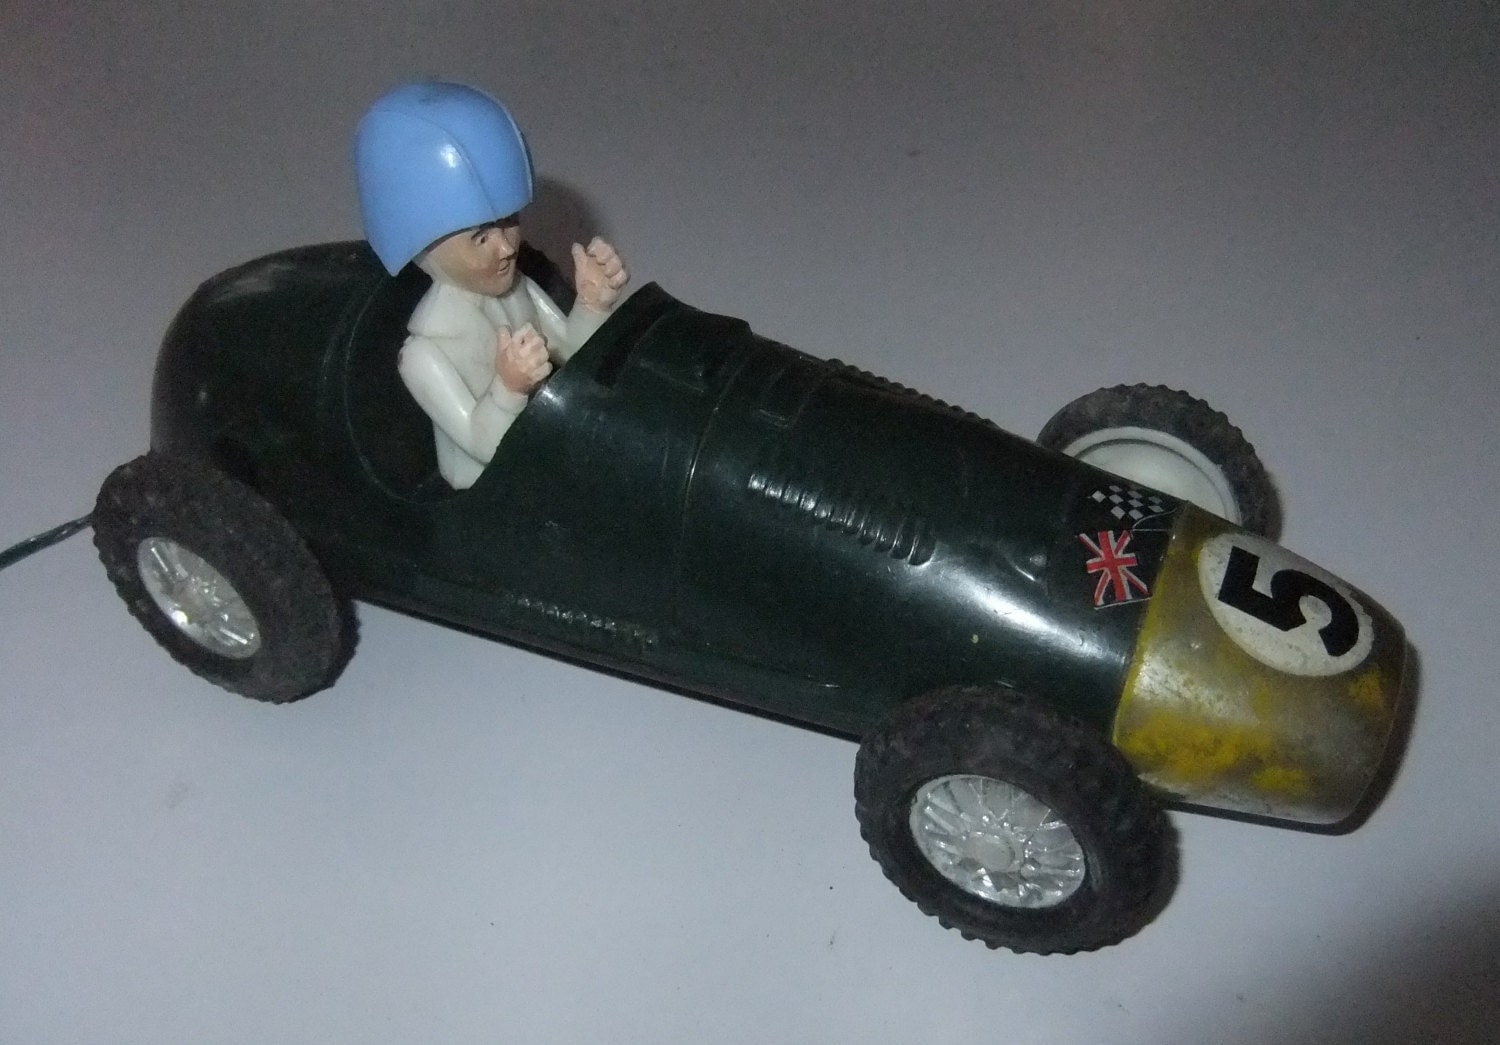 Formula one F1 Classic racing car plastic vintage c1960s battery operated plastic toy Empire made